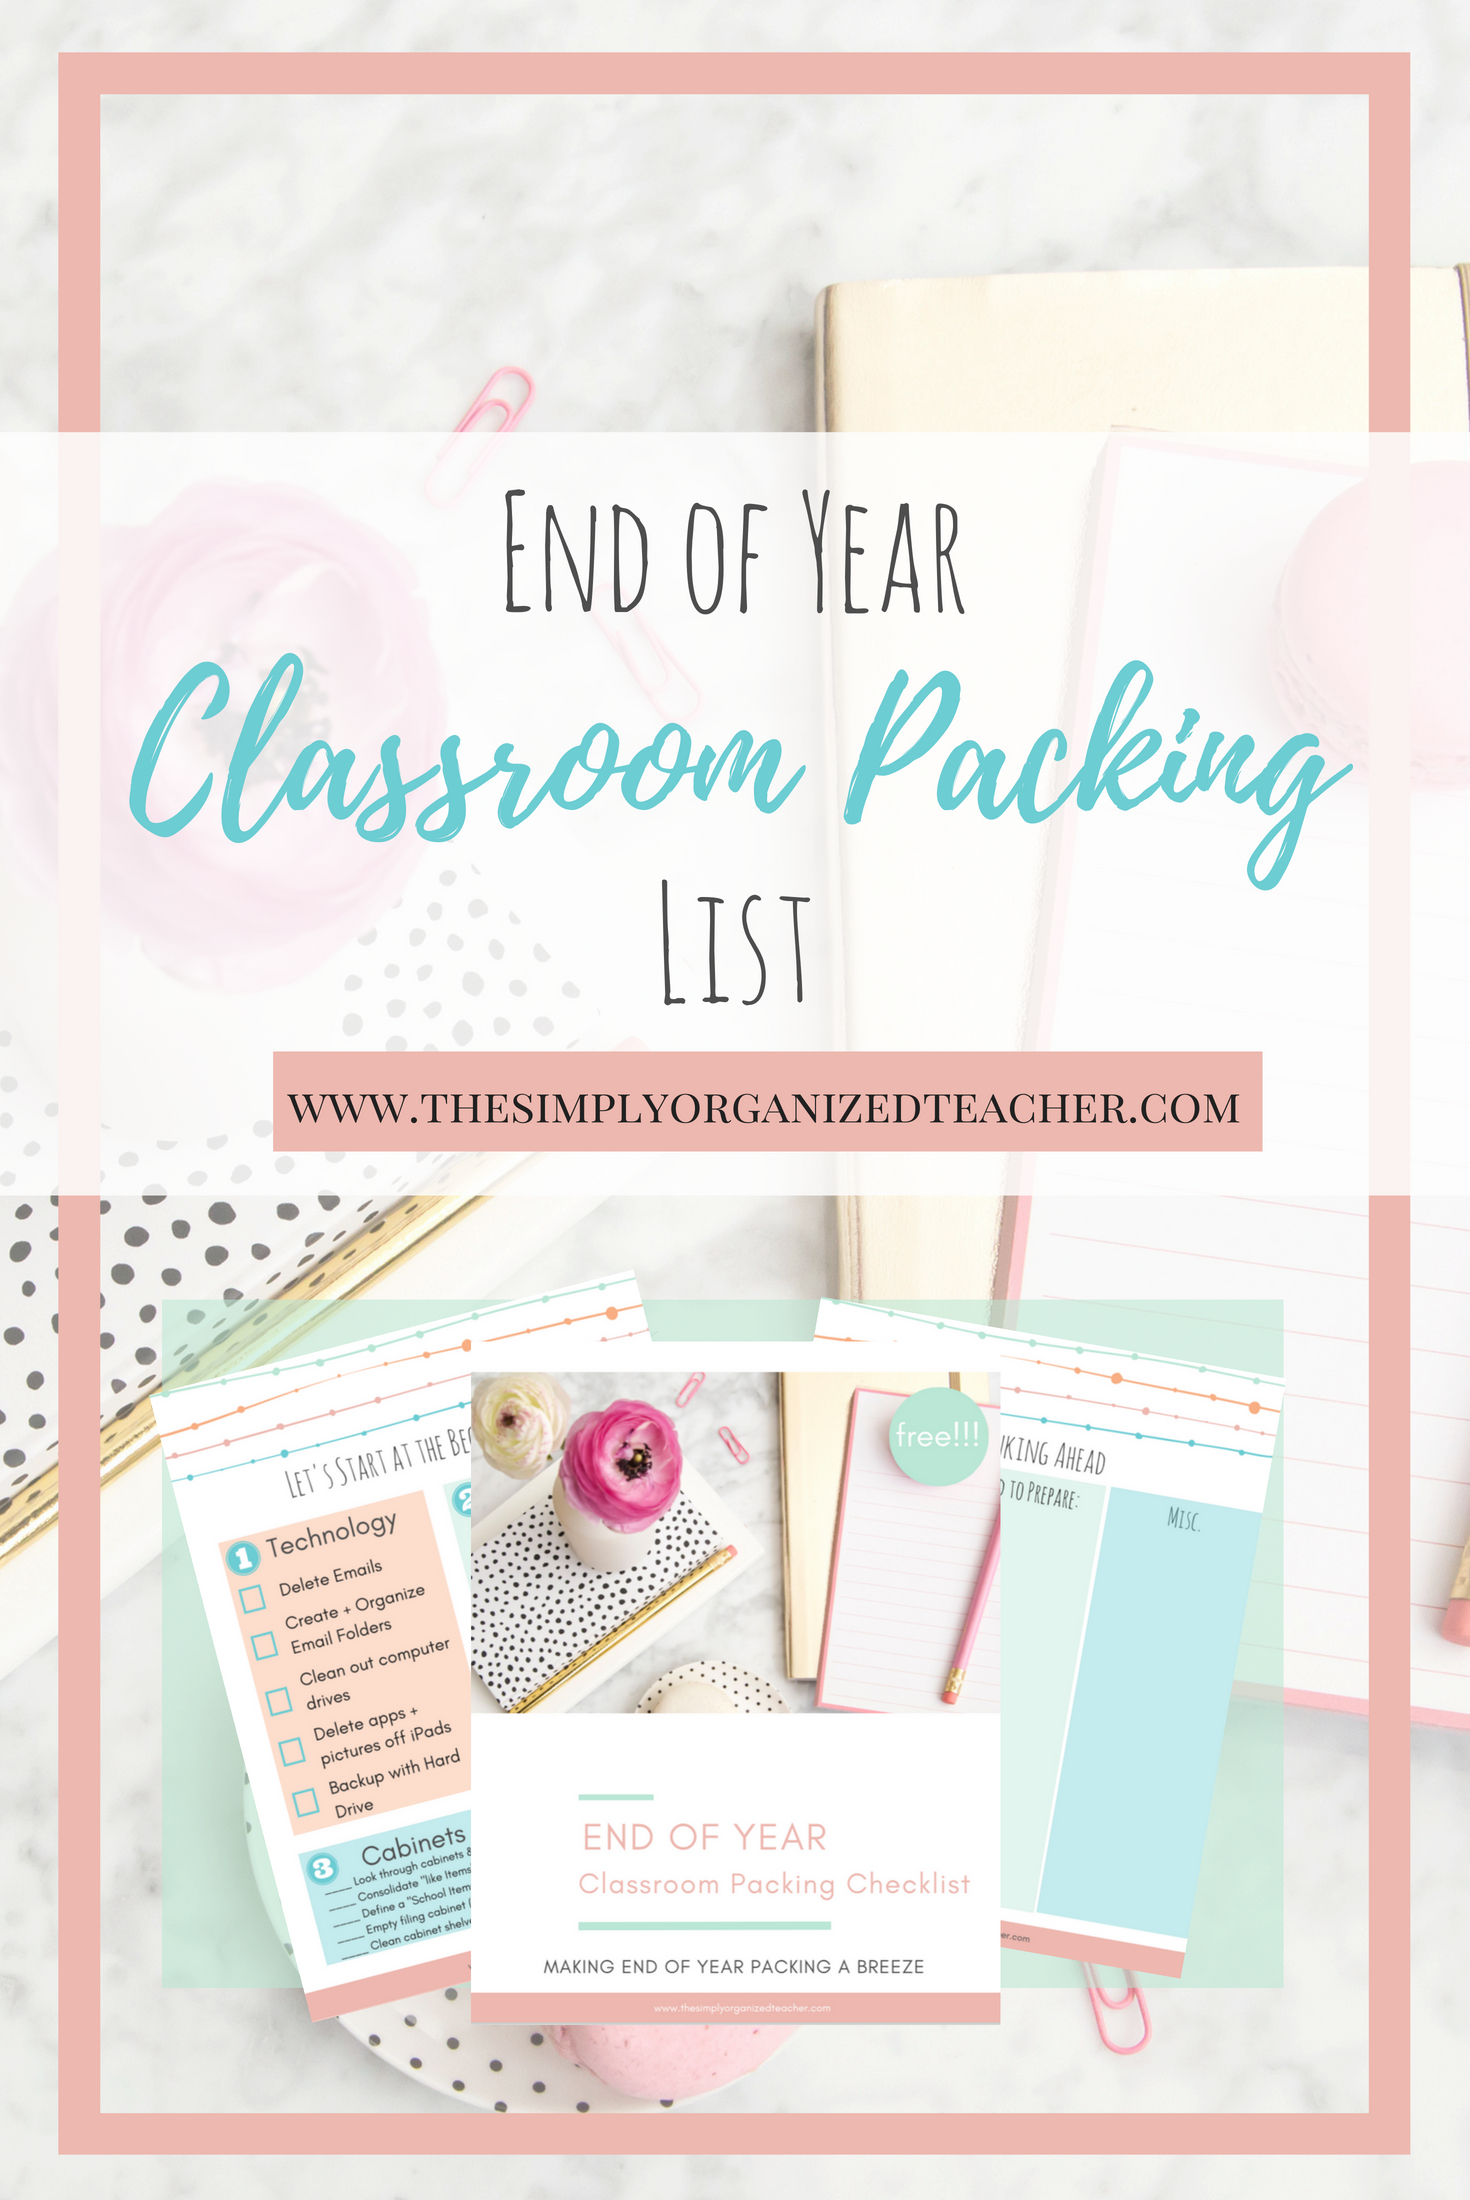 End of Year Classroom Packing List